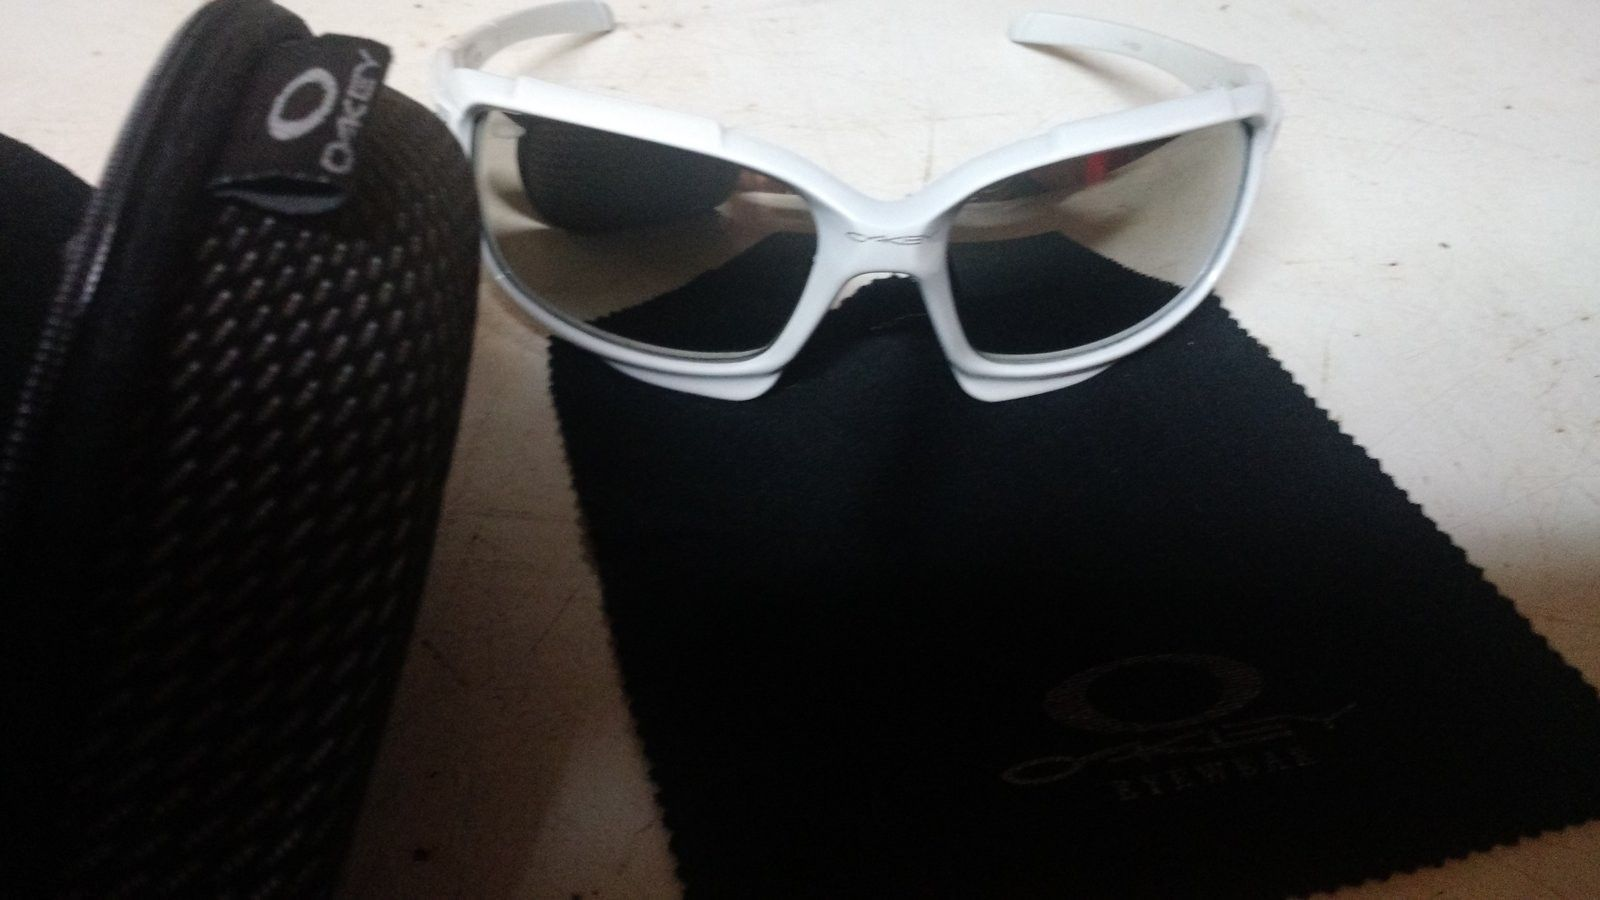 Can't identify if Oakley's are real/fake!? - 14667480952541964660523.jpg